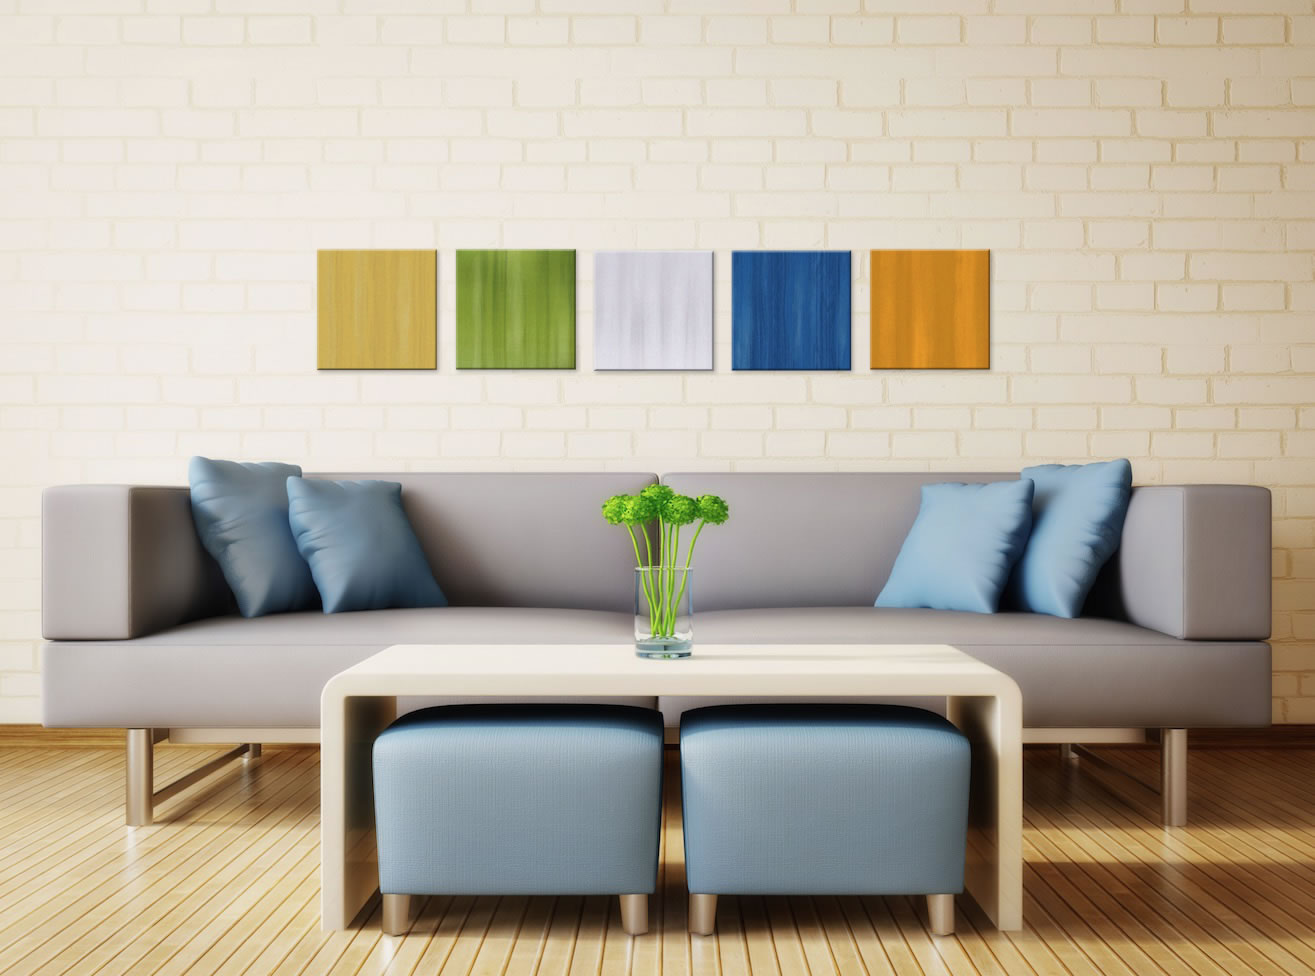 Summer Drink - Colorful Contemporary Accents by Celeste Reiter - Lifestyle Image